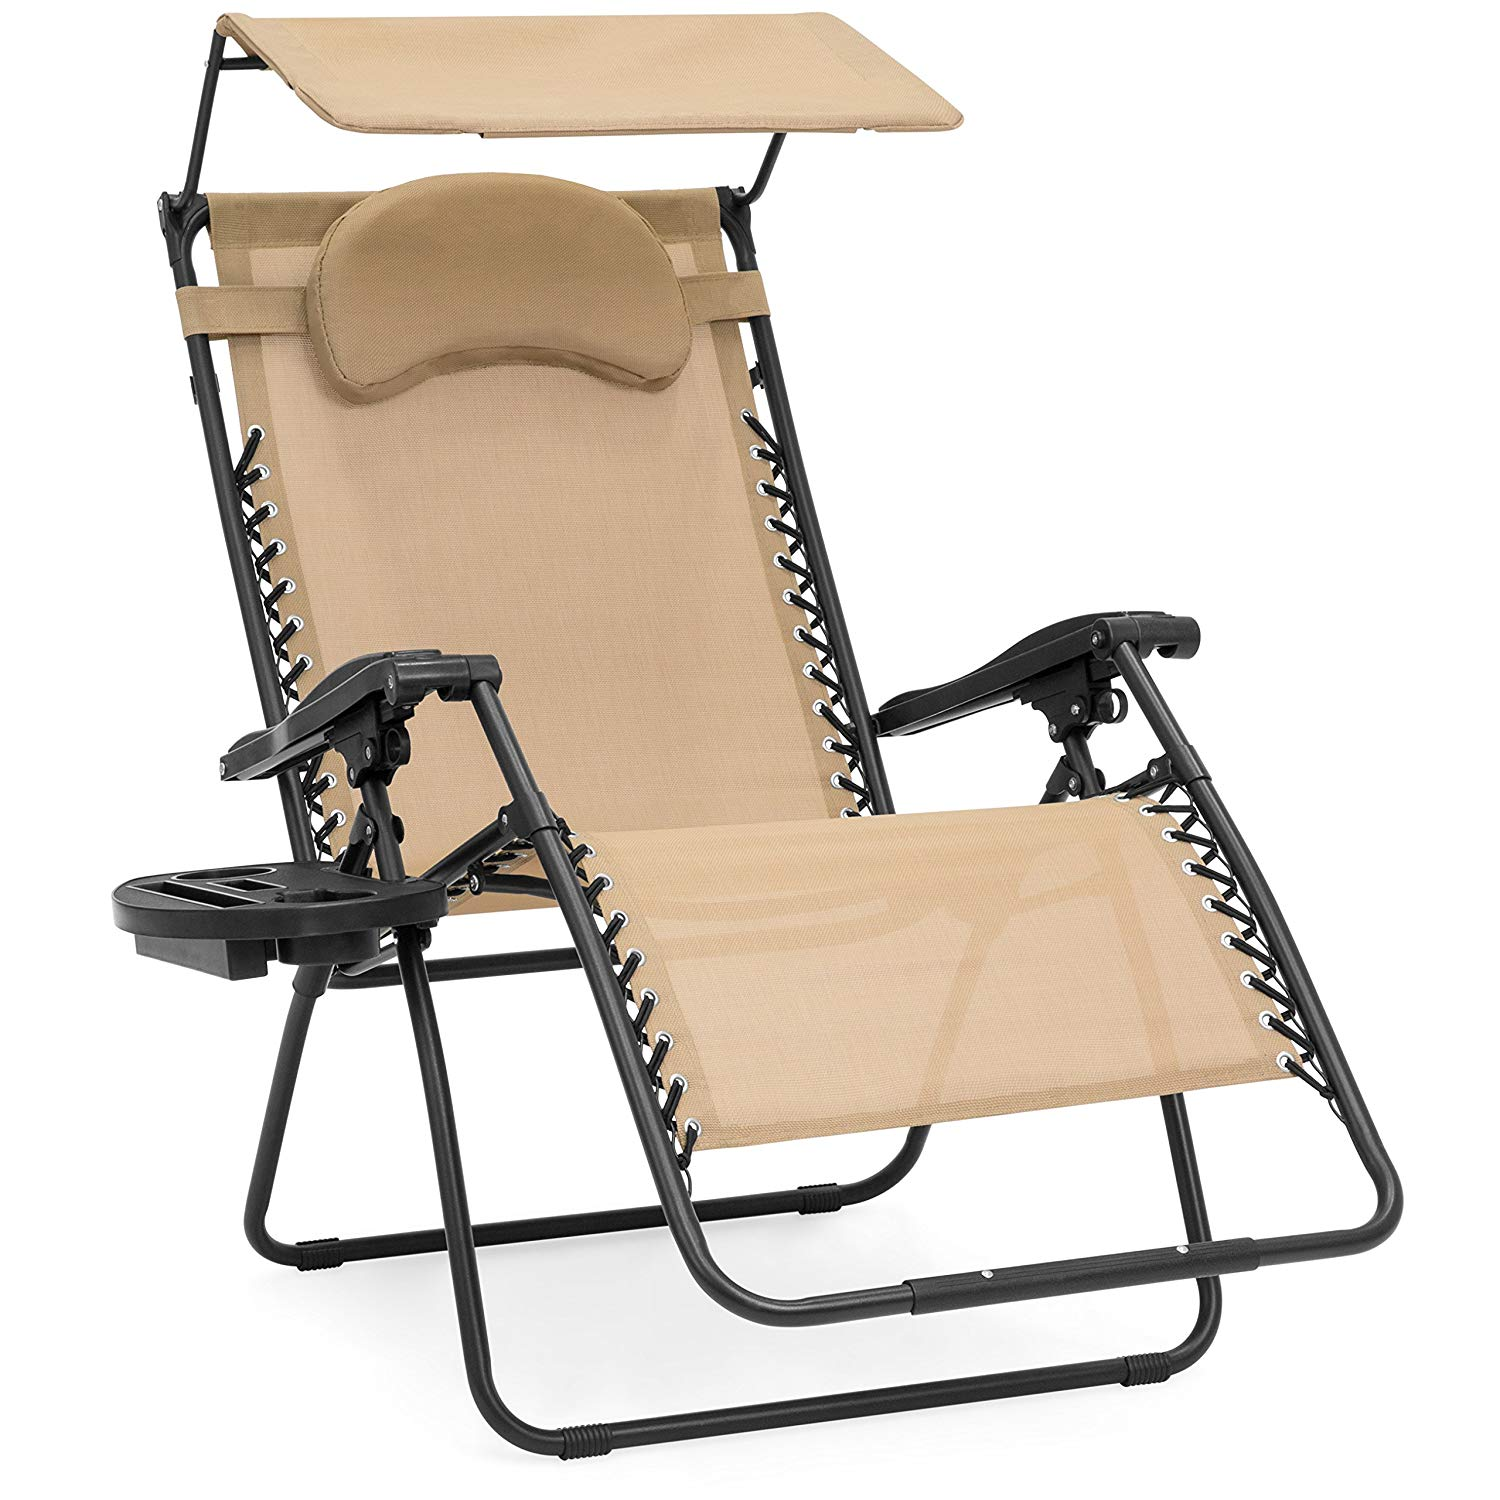 Best Choice Products Oversized Zero Gravity Reclining Lounge Patio Chairs w/Folding Canopy Shade and Cup Holder (Tan)